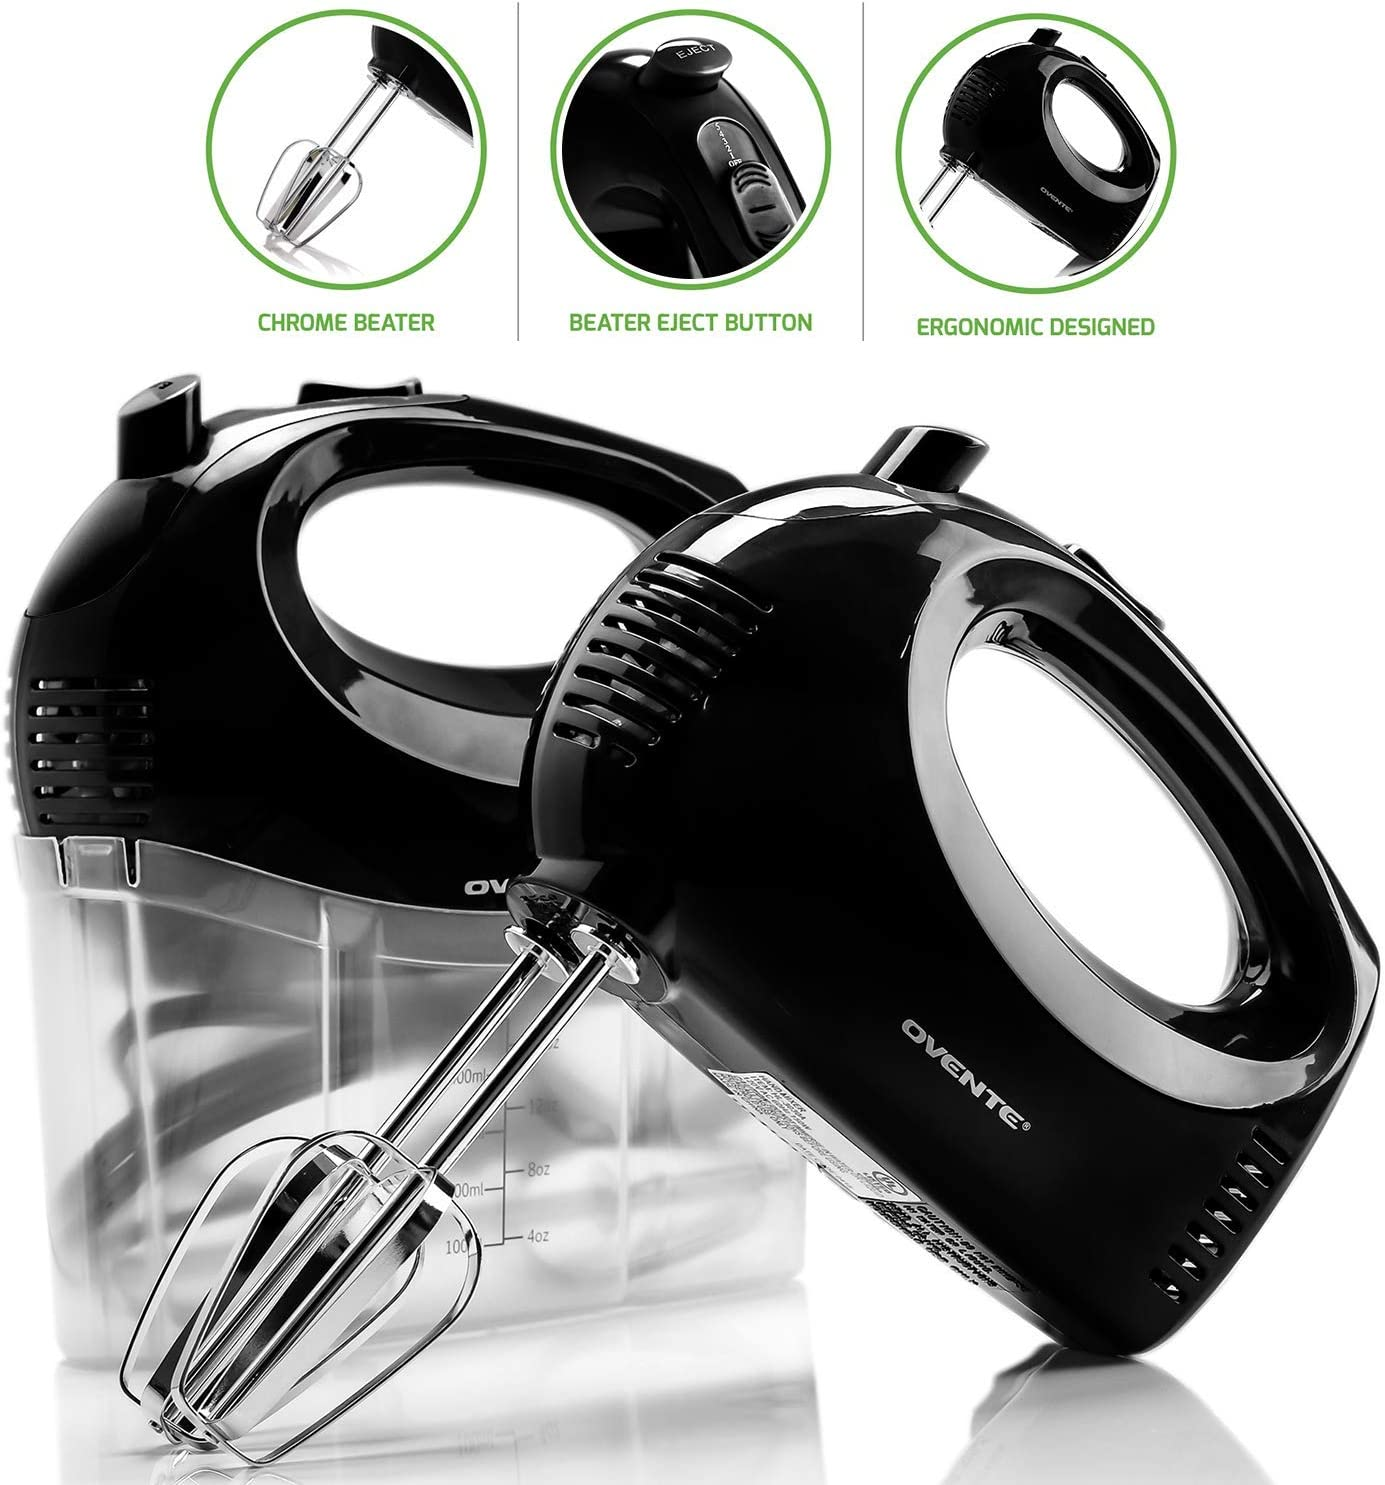 OVENTE Electric Hand Mixer, 5 Mixing Speeds, 150W, 2 Stainless Steel Chrome Beaters Snap-On Storage Case, Black HM151B